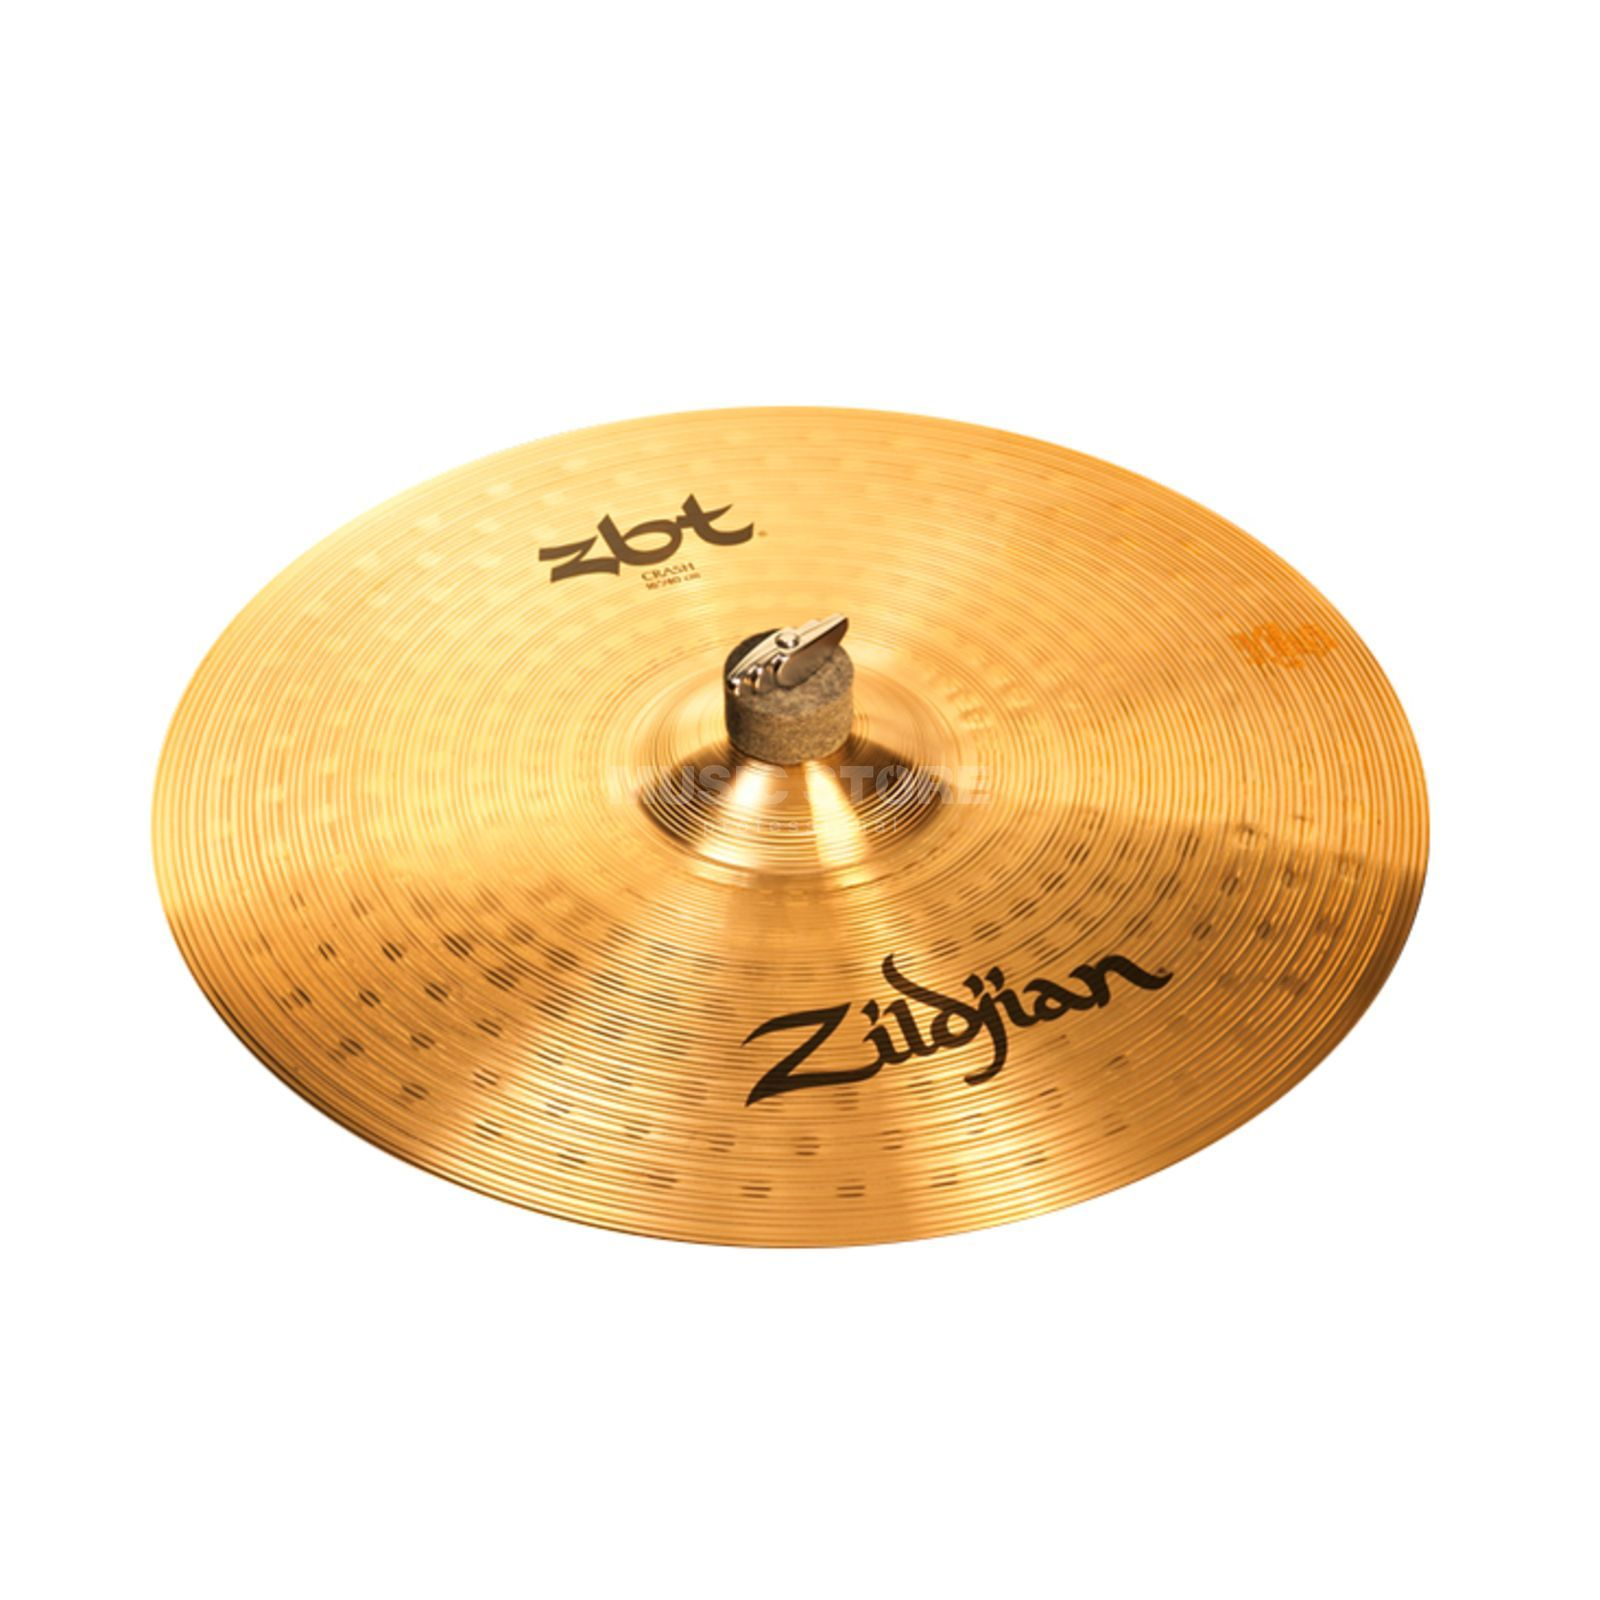 "Zildjian ZBT 16"" Crash, Brilliant Finish Produktbillede"